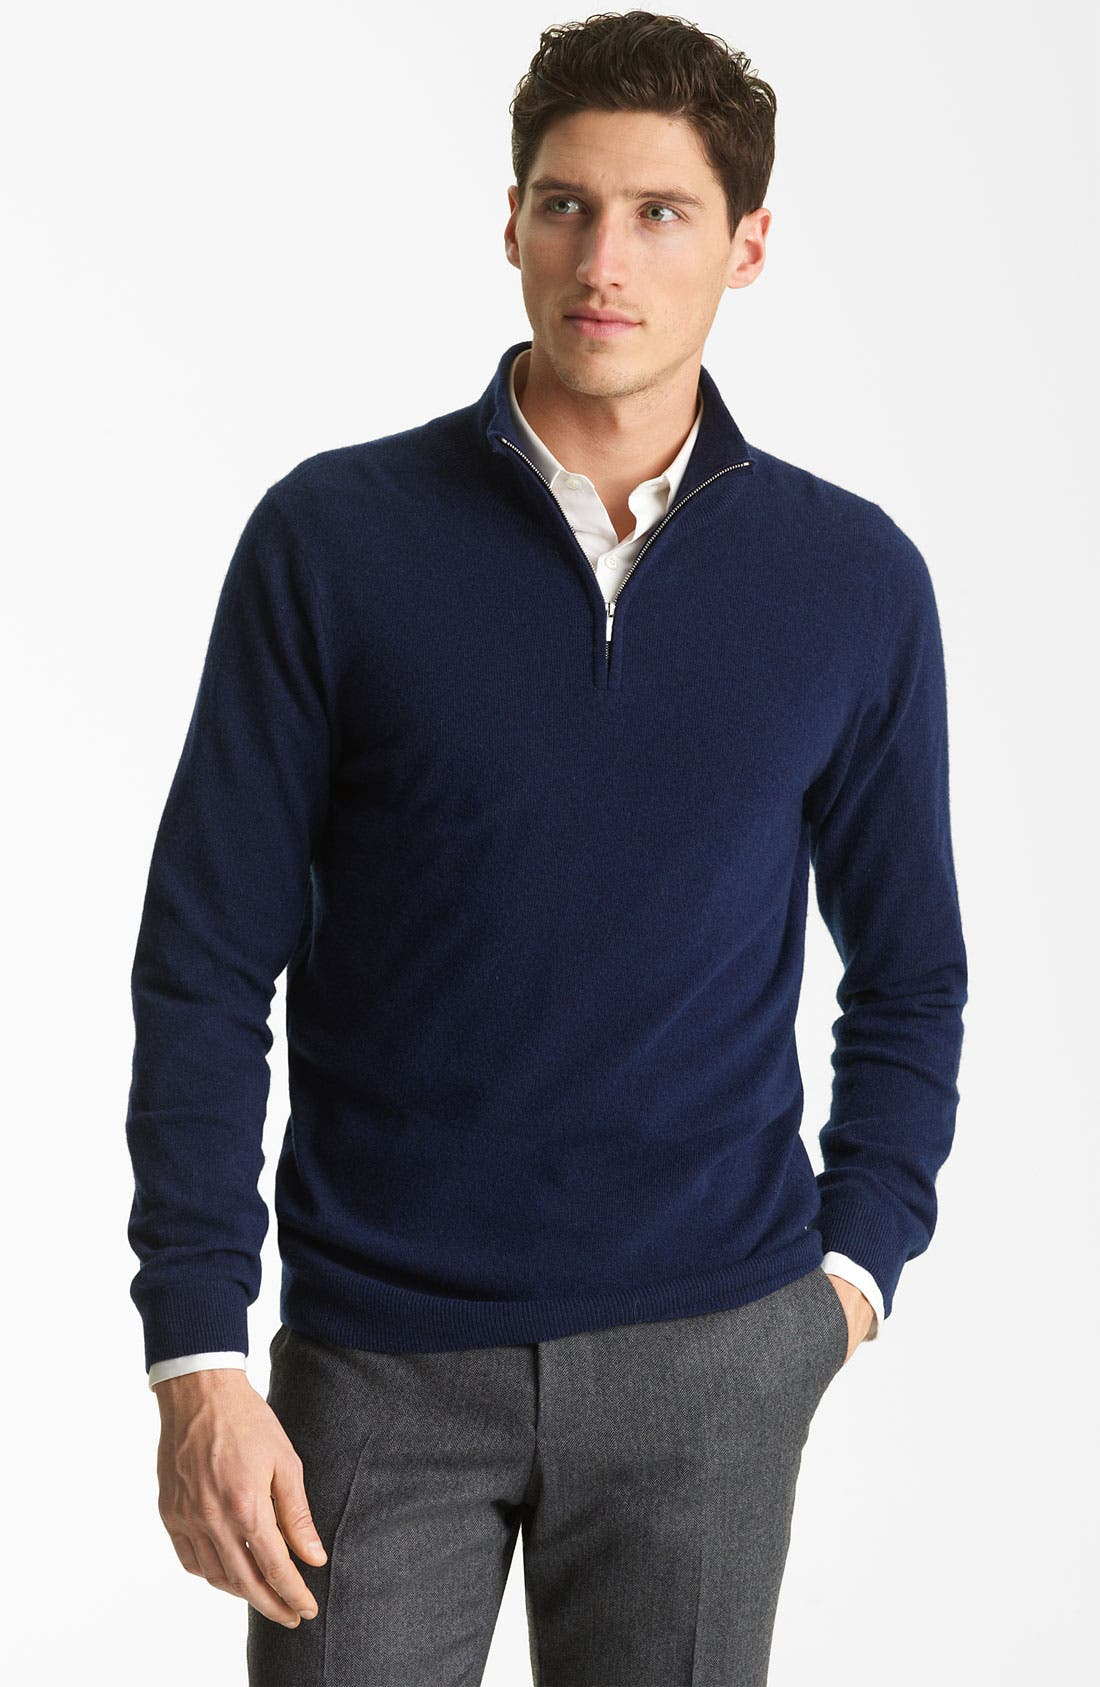 Main Image - Pringle of Scotland Zip Neck Sweater